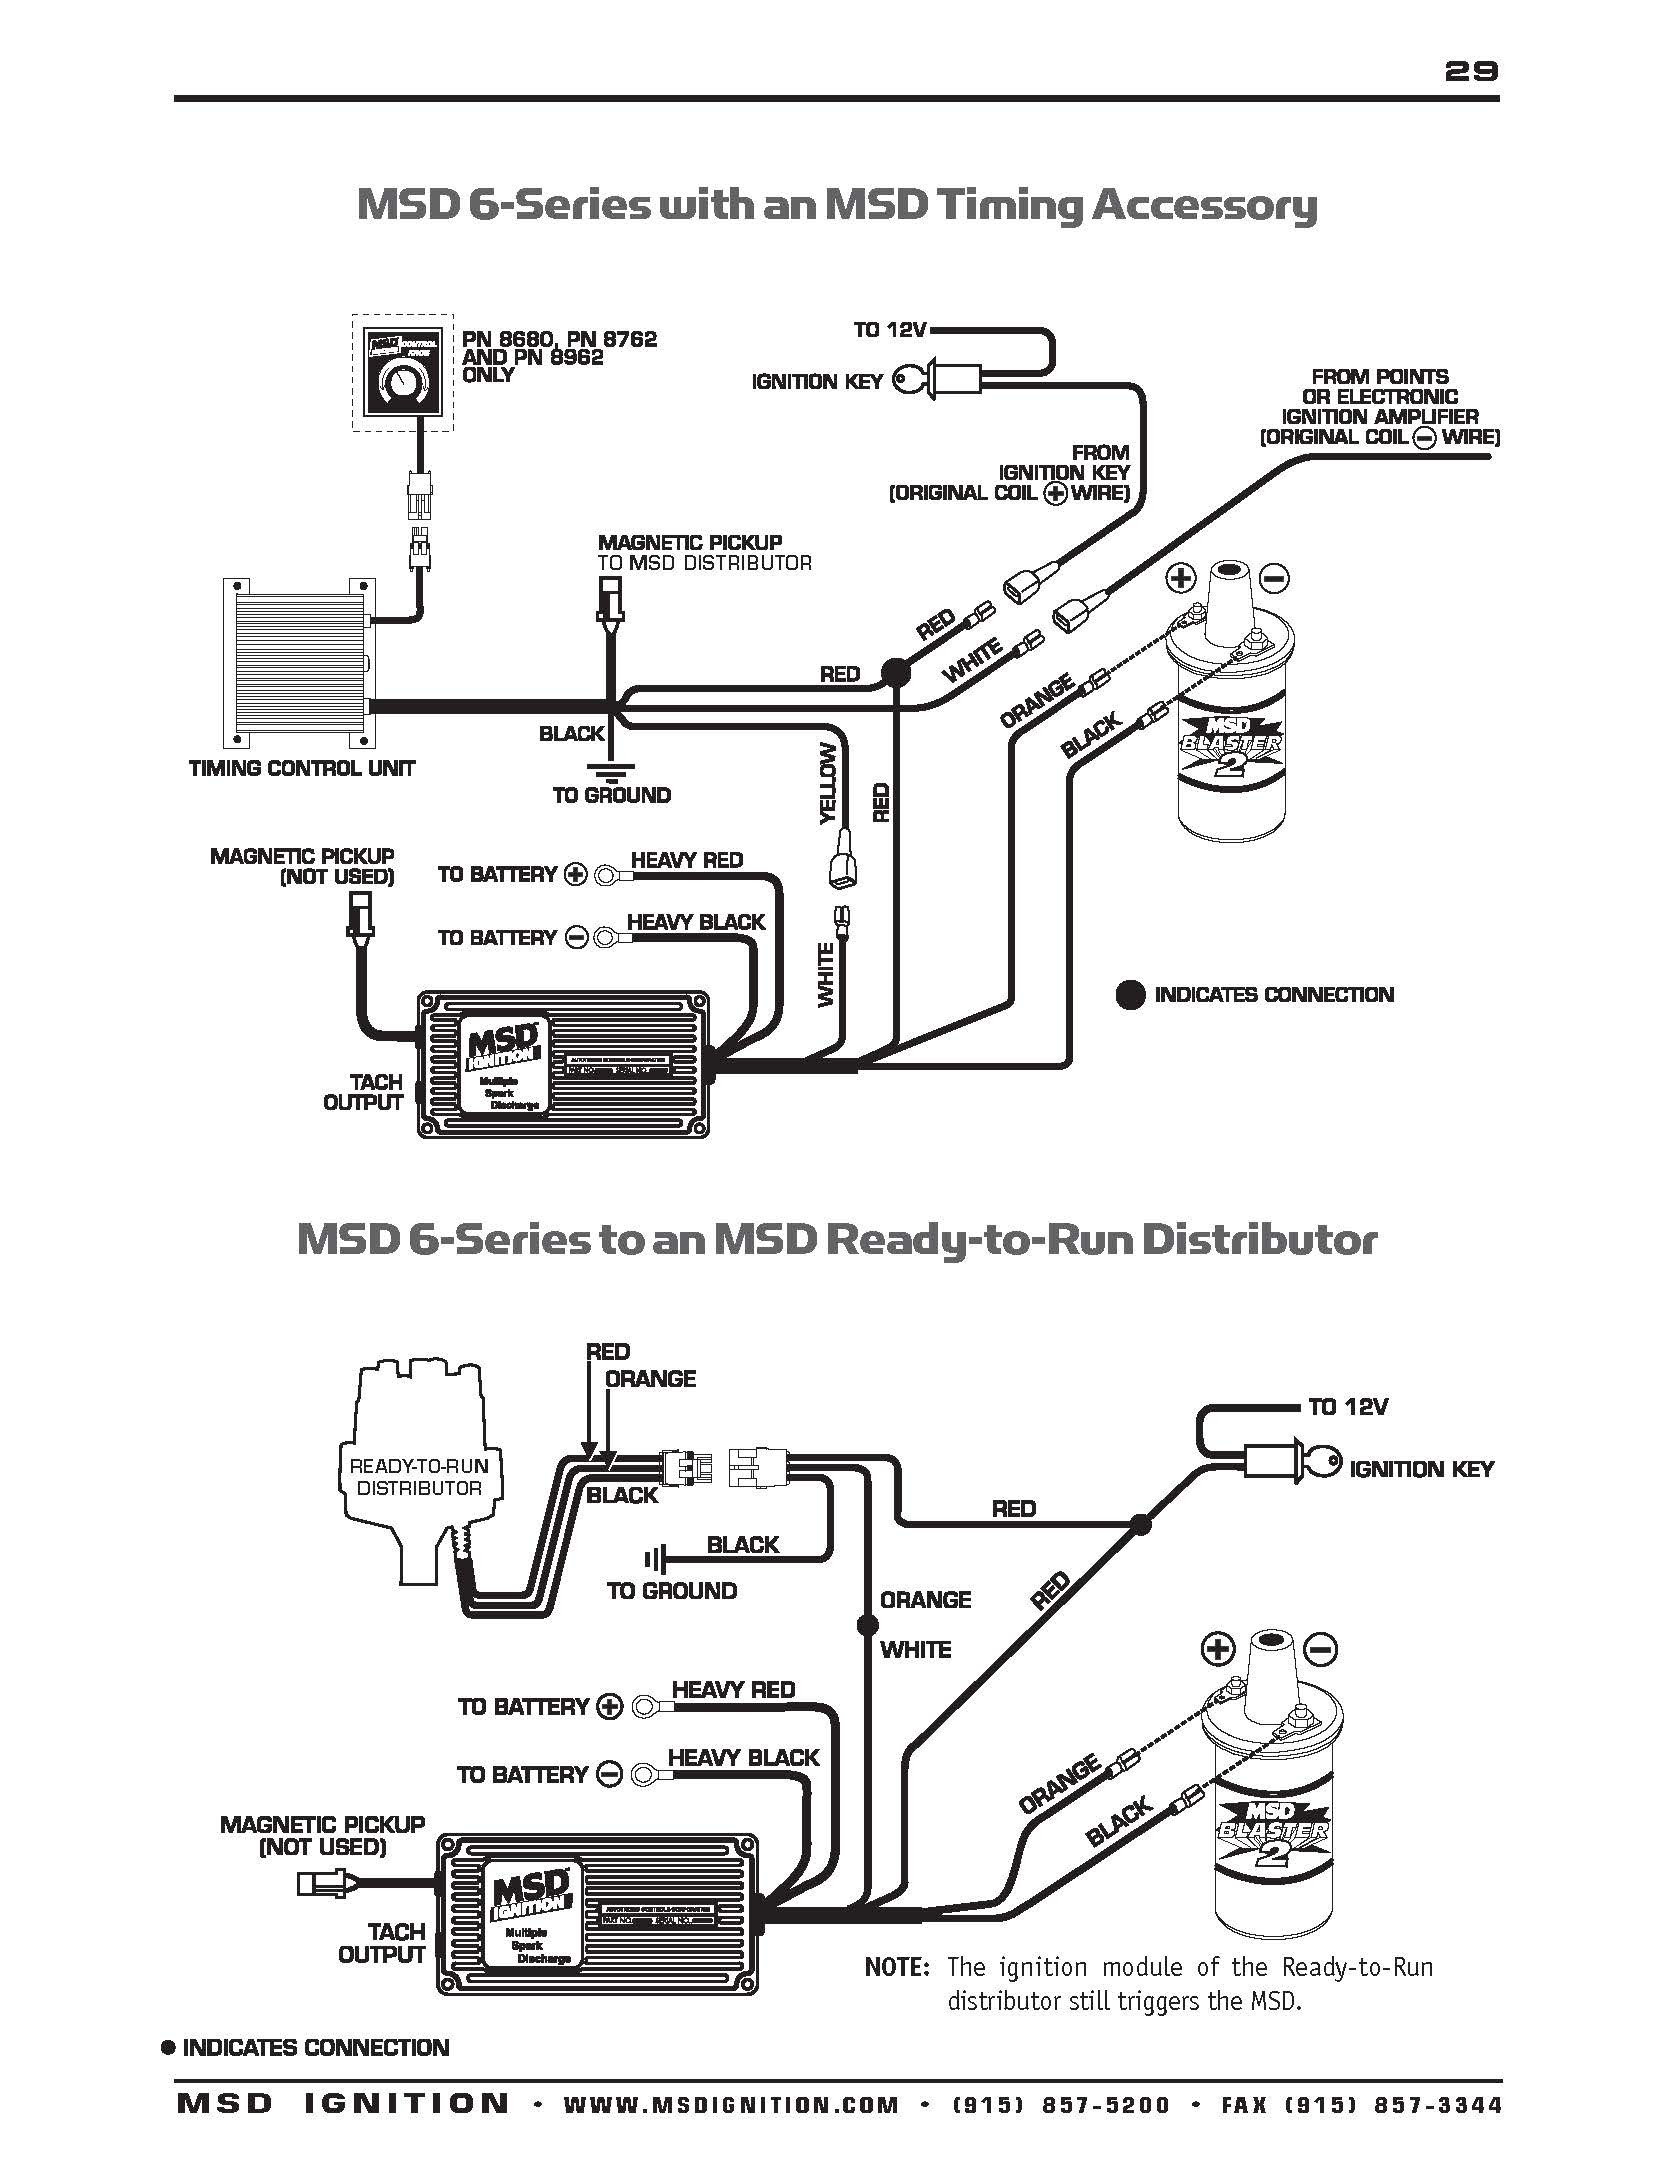 Hei Distributor Wiring Diagram Wiring Diagram Msd Distributor Mon Msd Ignition Unbelievable Of Hei Distributor Wiring Diagram Msd Ignition Wiring Diagrams Throughout 6a Diagram to Distributor